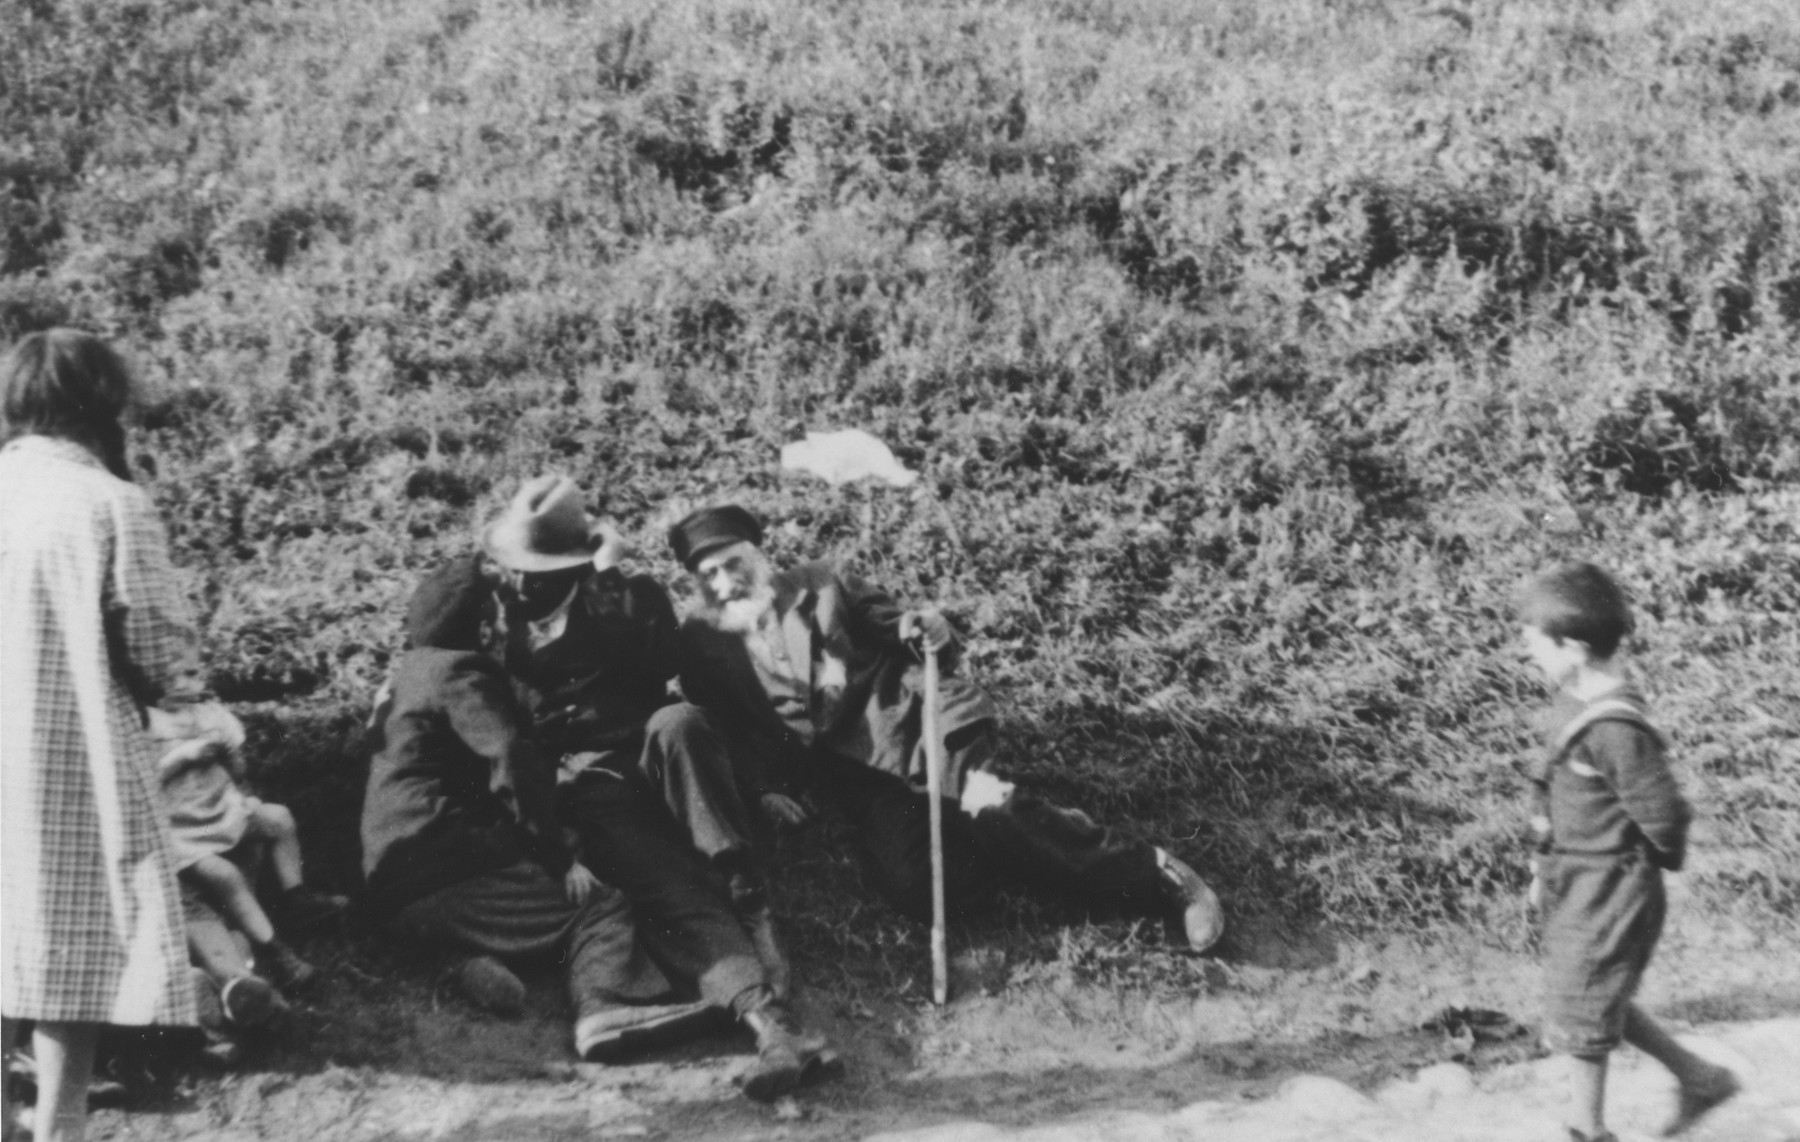 A boy dressed in a sailor suit walking along a road views a Jewish family sitting in the grass at the side of the road.   One image from a photograph album belonging to a member of Police Battalion 101.